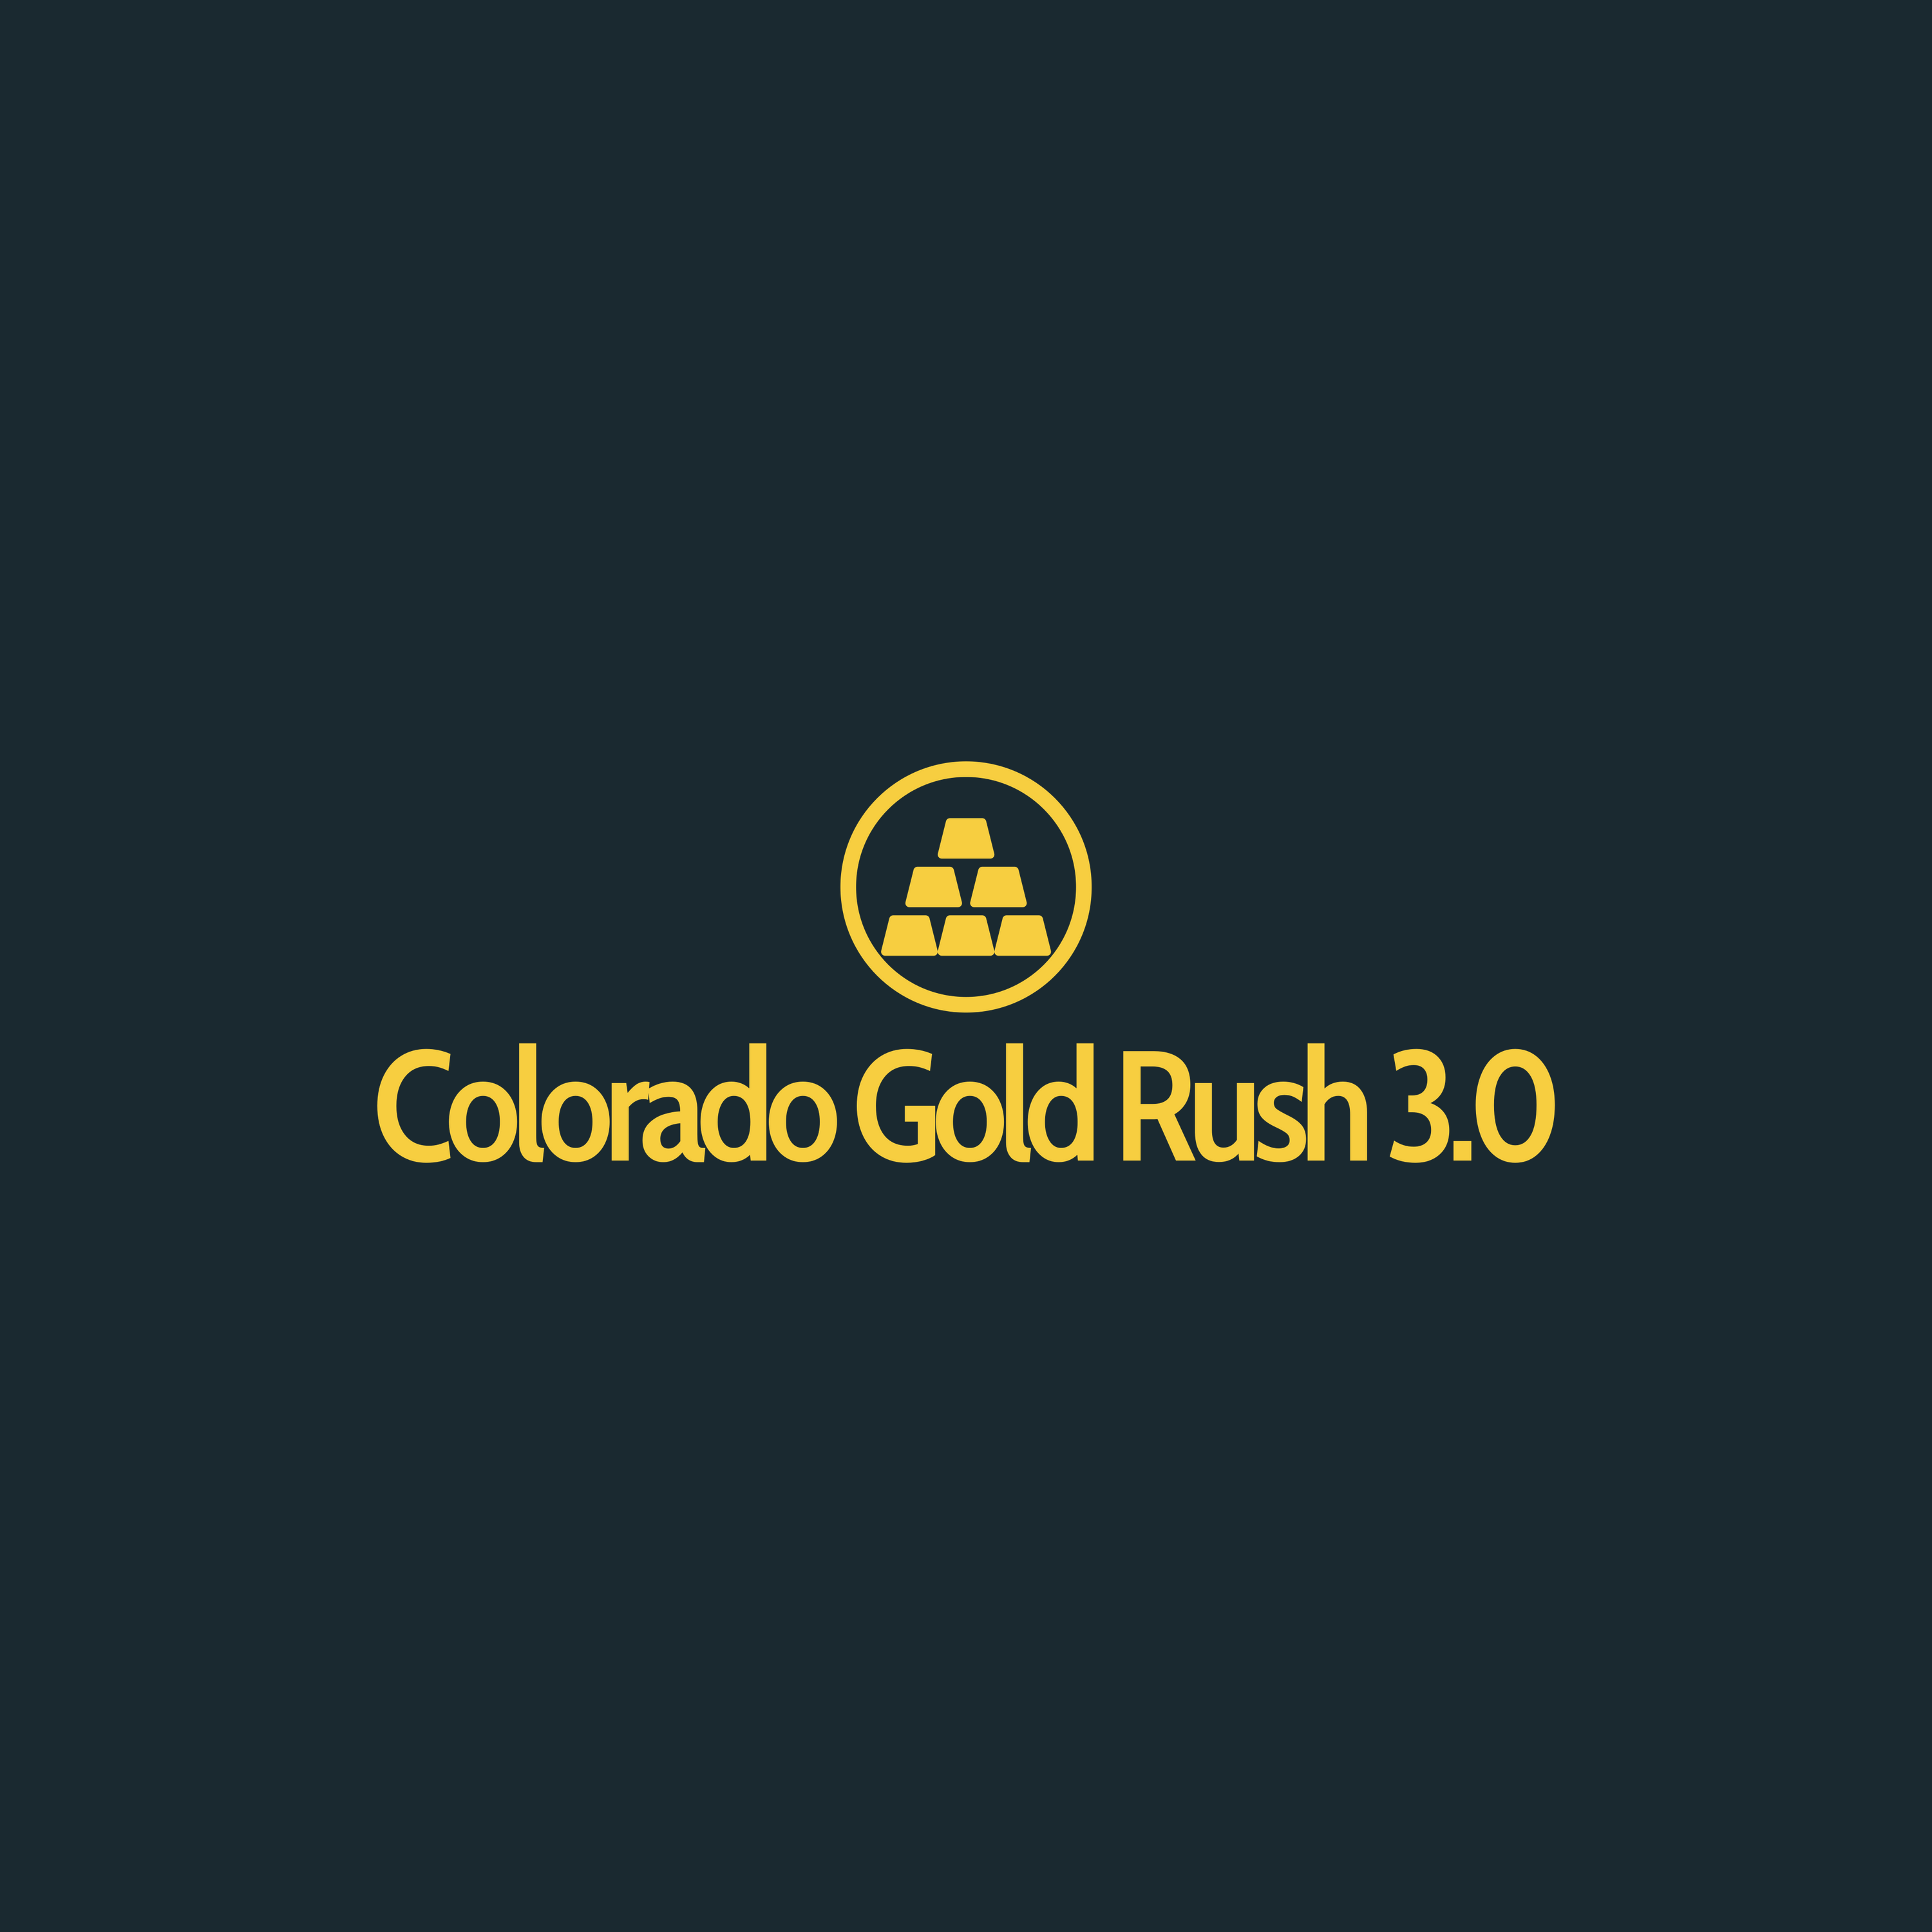 Colorado Gold Rush 3.0